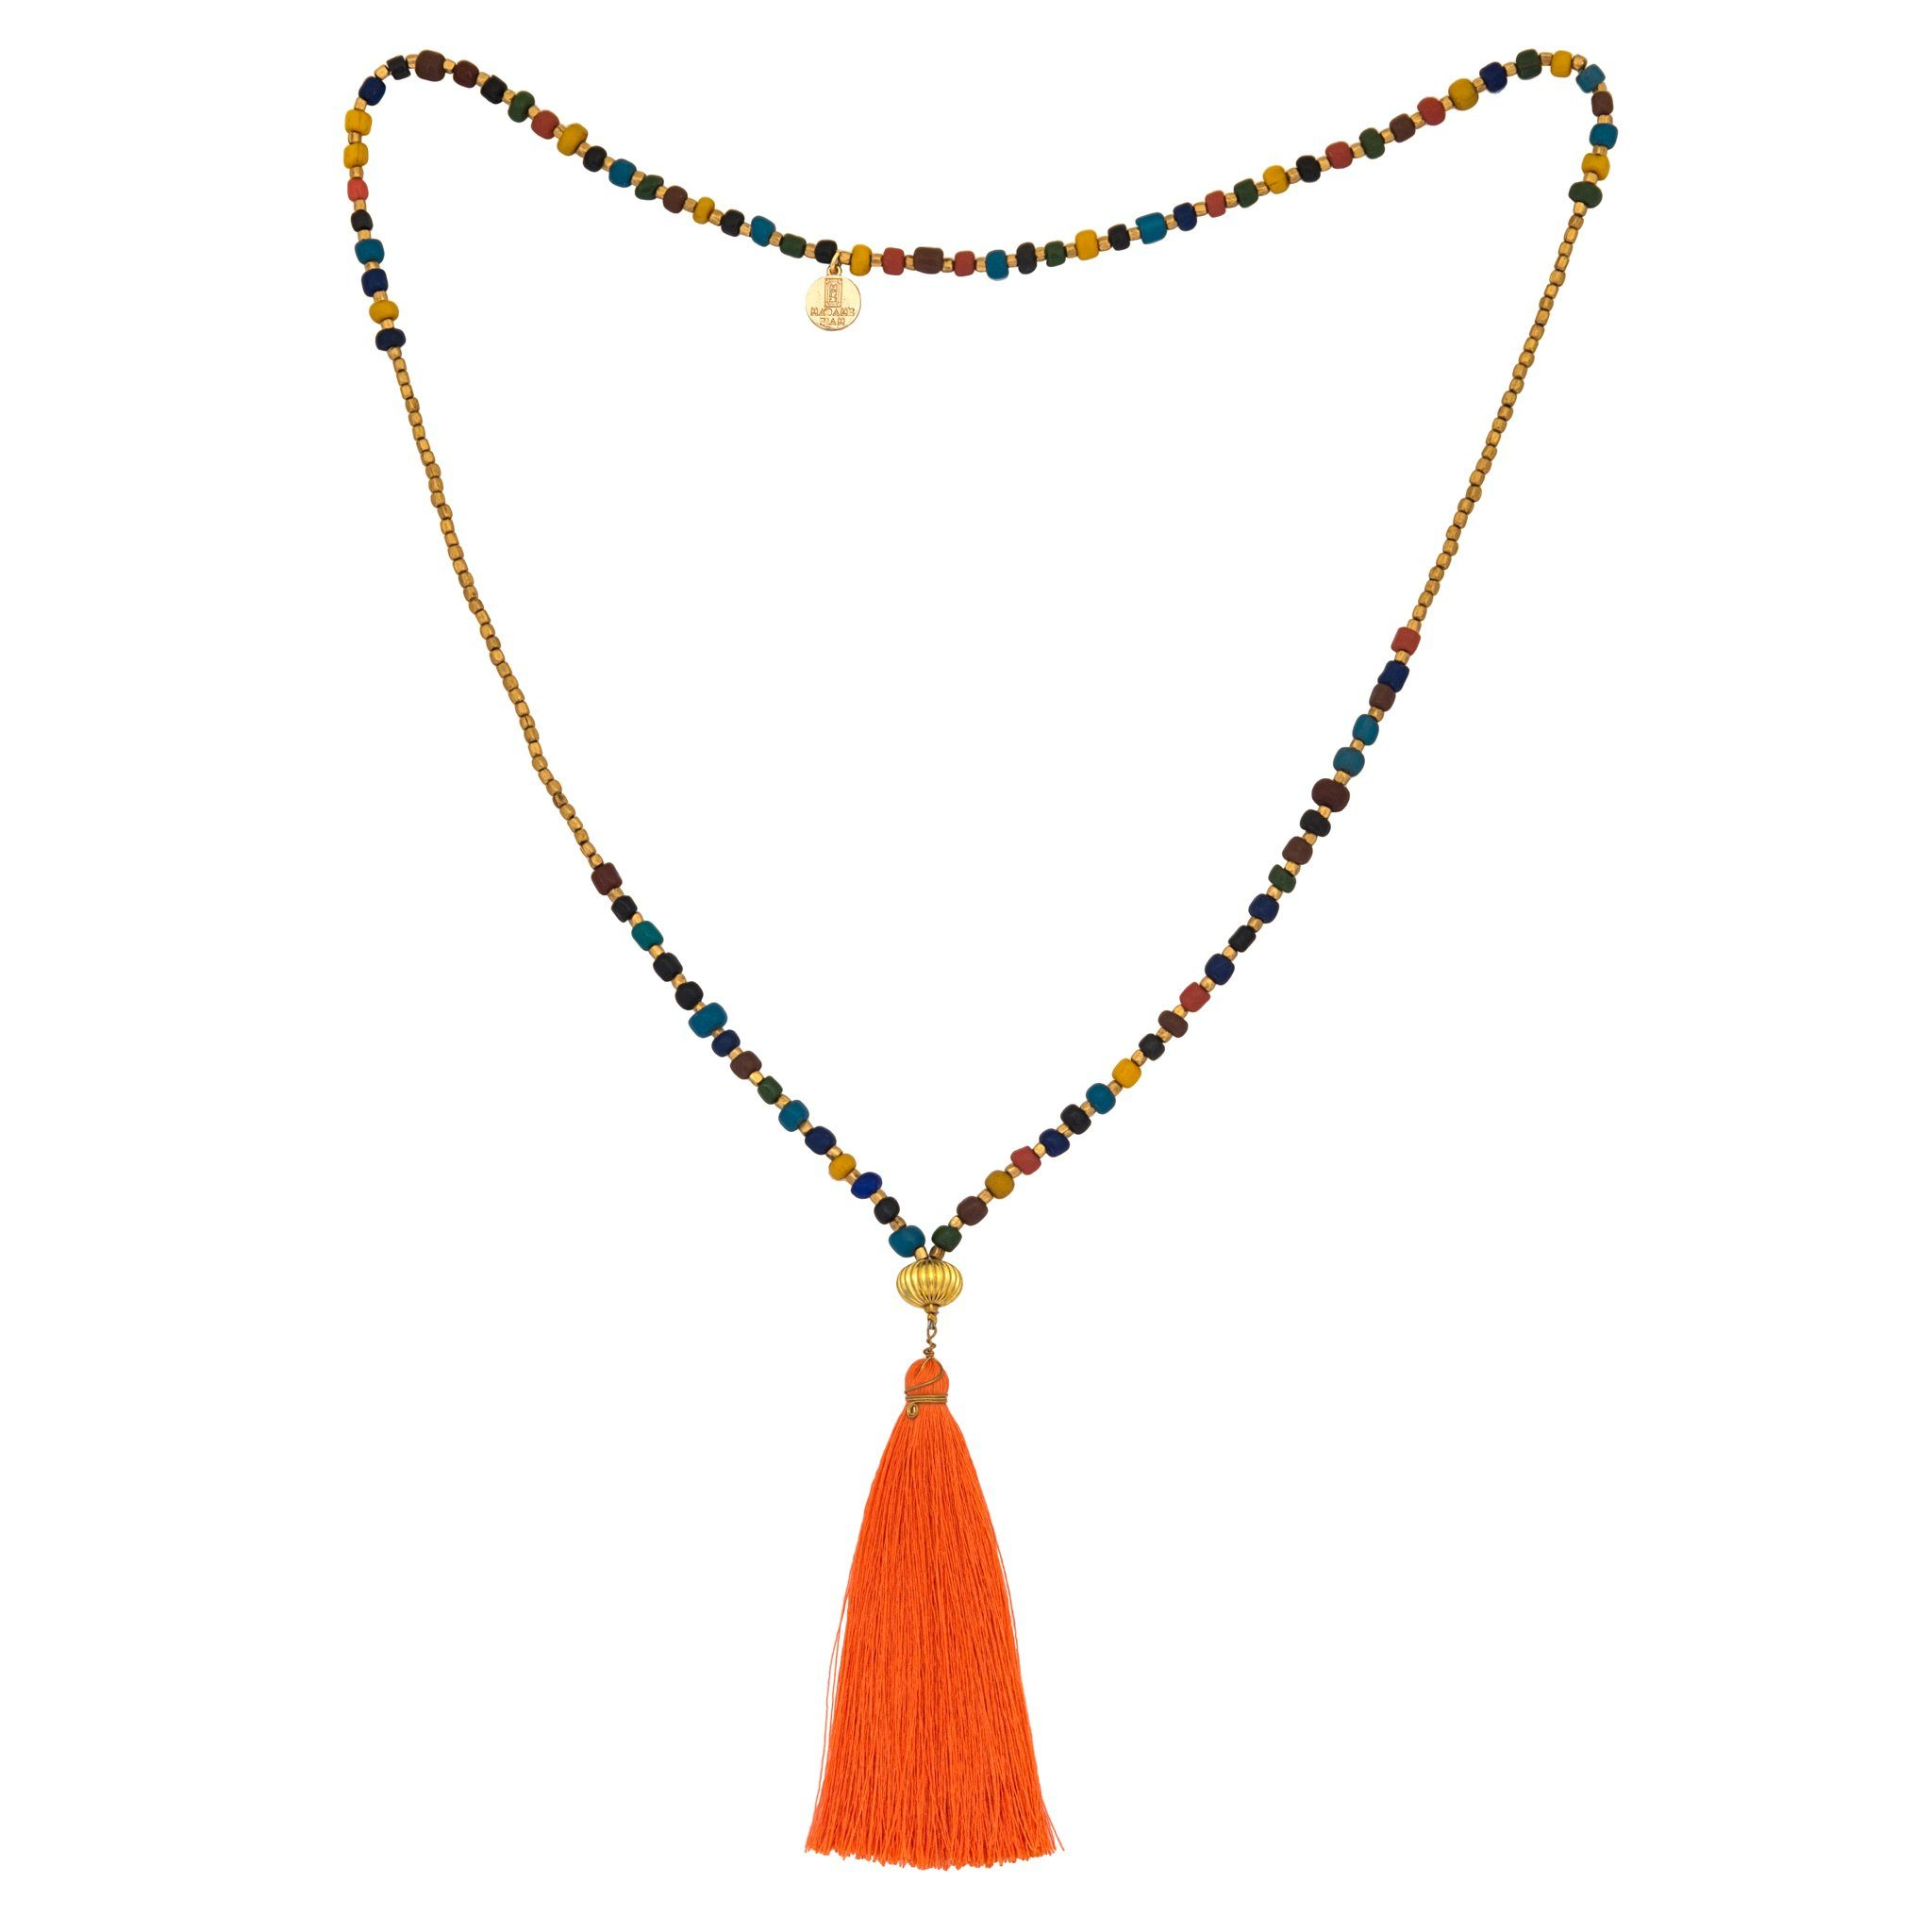 GOA orange tassel necklace